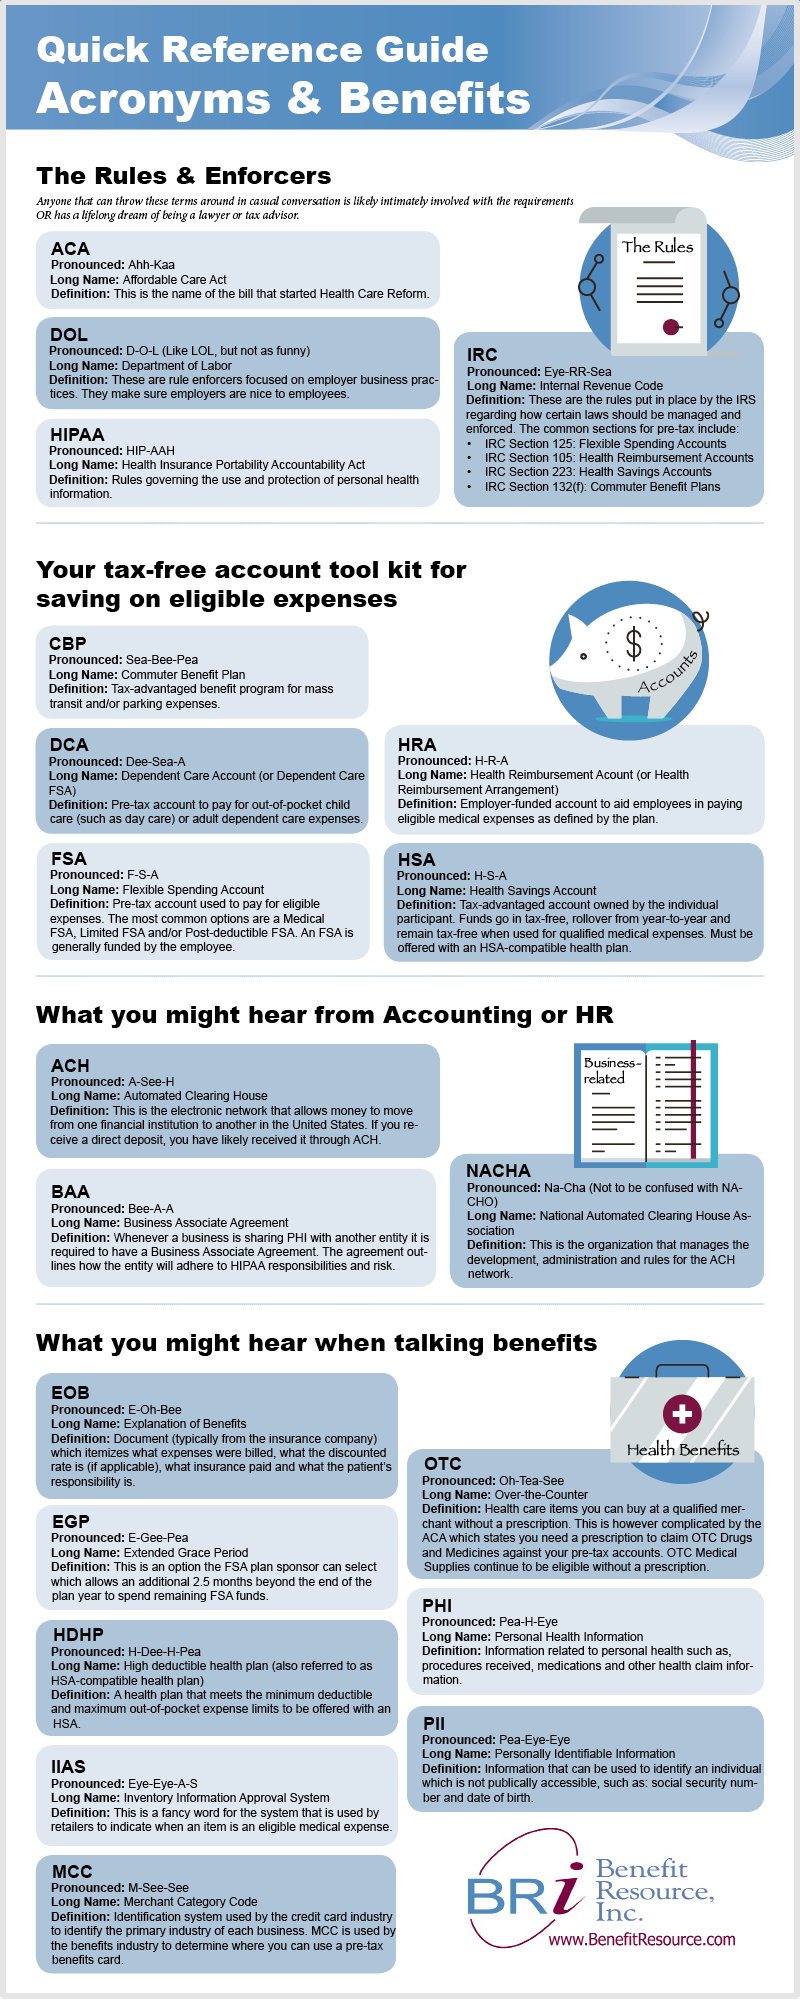 Downloadable Guide: Quick Reference to Acronyms used in Benefits. Takes a detailed look at common acronyms used in benefits. The review of acronyms used in benefits is broken into 4 sections. Each definition includes the acronym, pronunciation, long name, and definition. The Rules and Enforcers covers acronyms such as: ACA, DOL, HIPPA and IRC. Next, we cover your tax-free account tool-kit with CBP, DCA, FSA, HRA and HSA. Then, we discuss things you might hear from accounting or HR, including:ACH, BAA and NACHA. Finally, we will cover some of the common acronyms used in benefits, including: EOB, EGP, HDHP, IIAS, MCC, OTC, PHI and PII